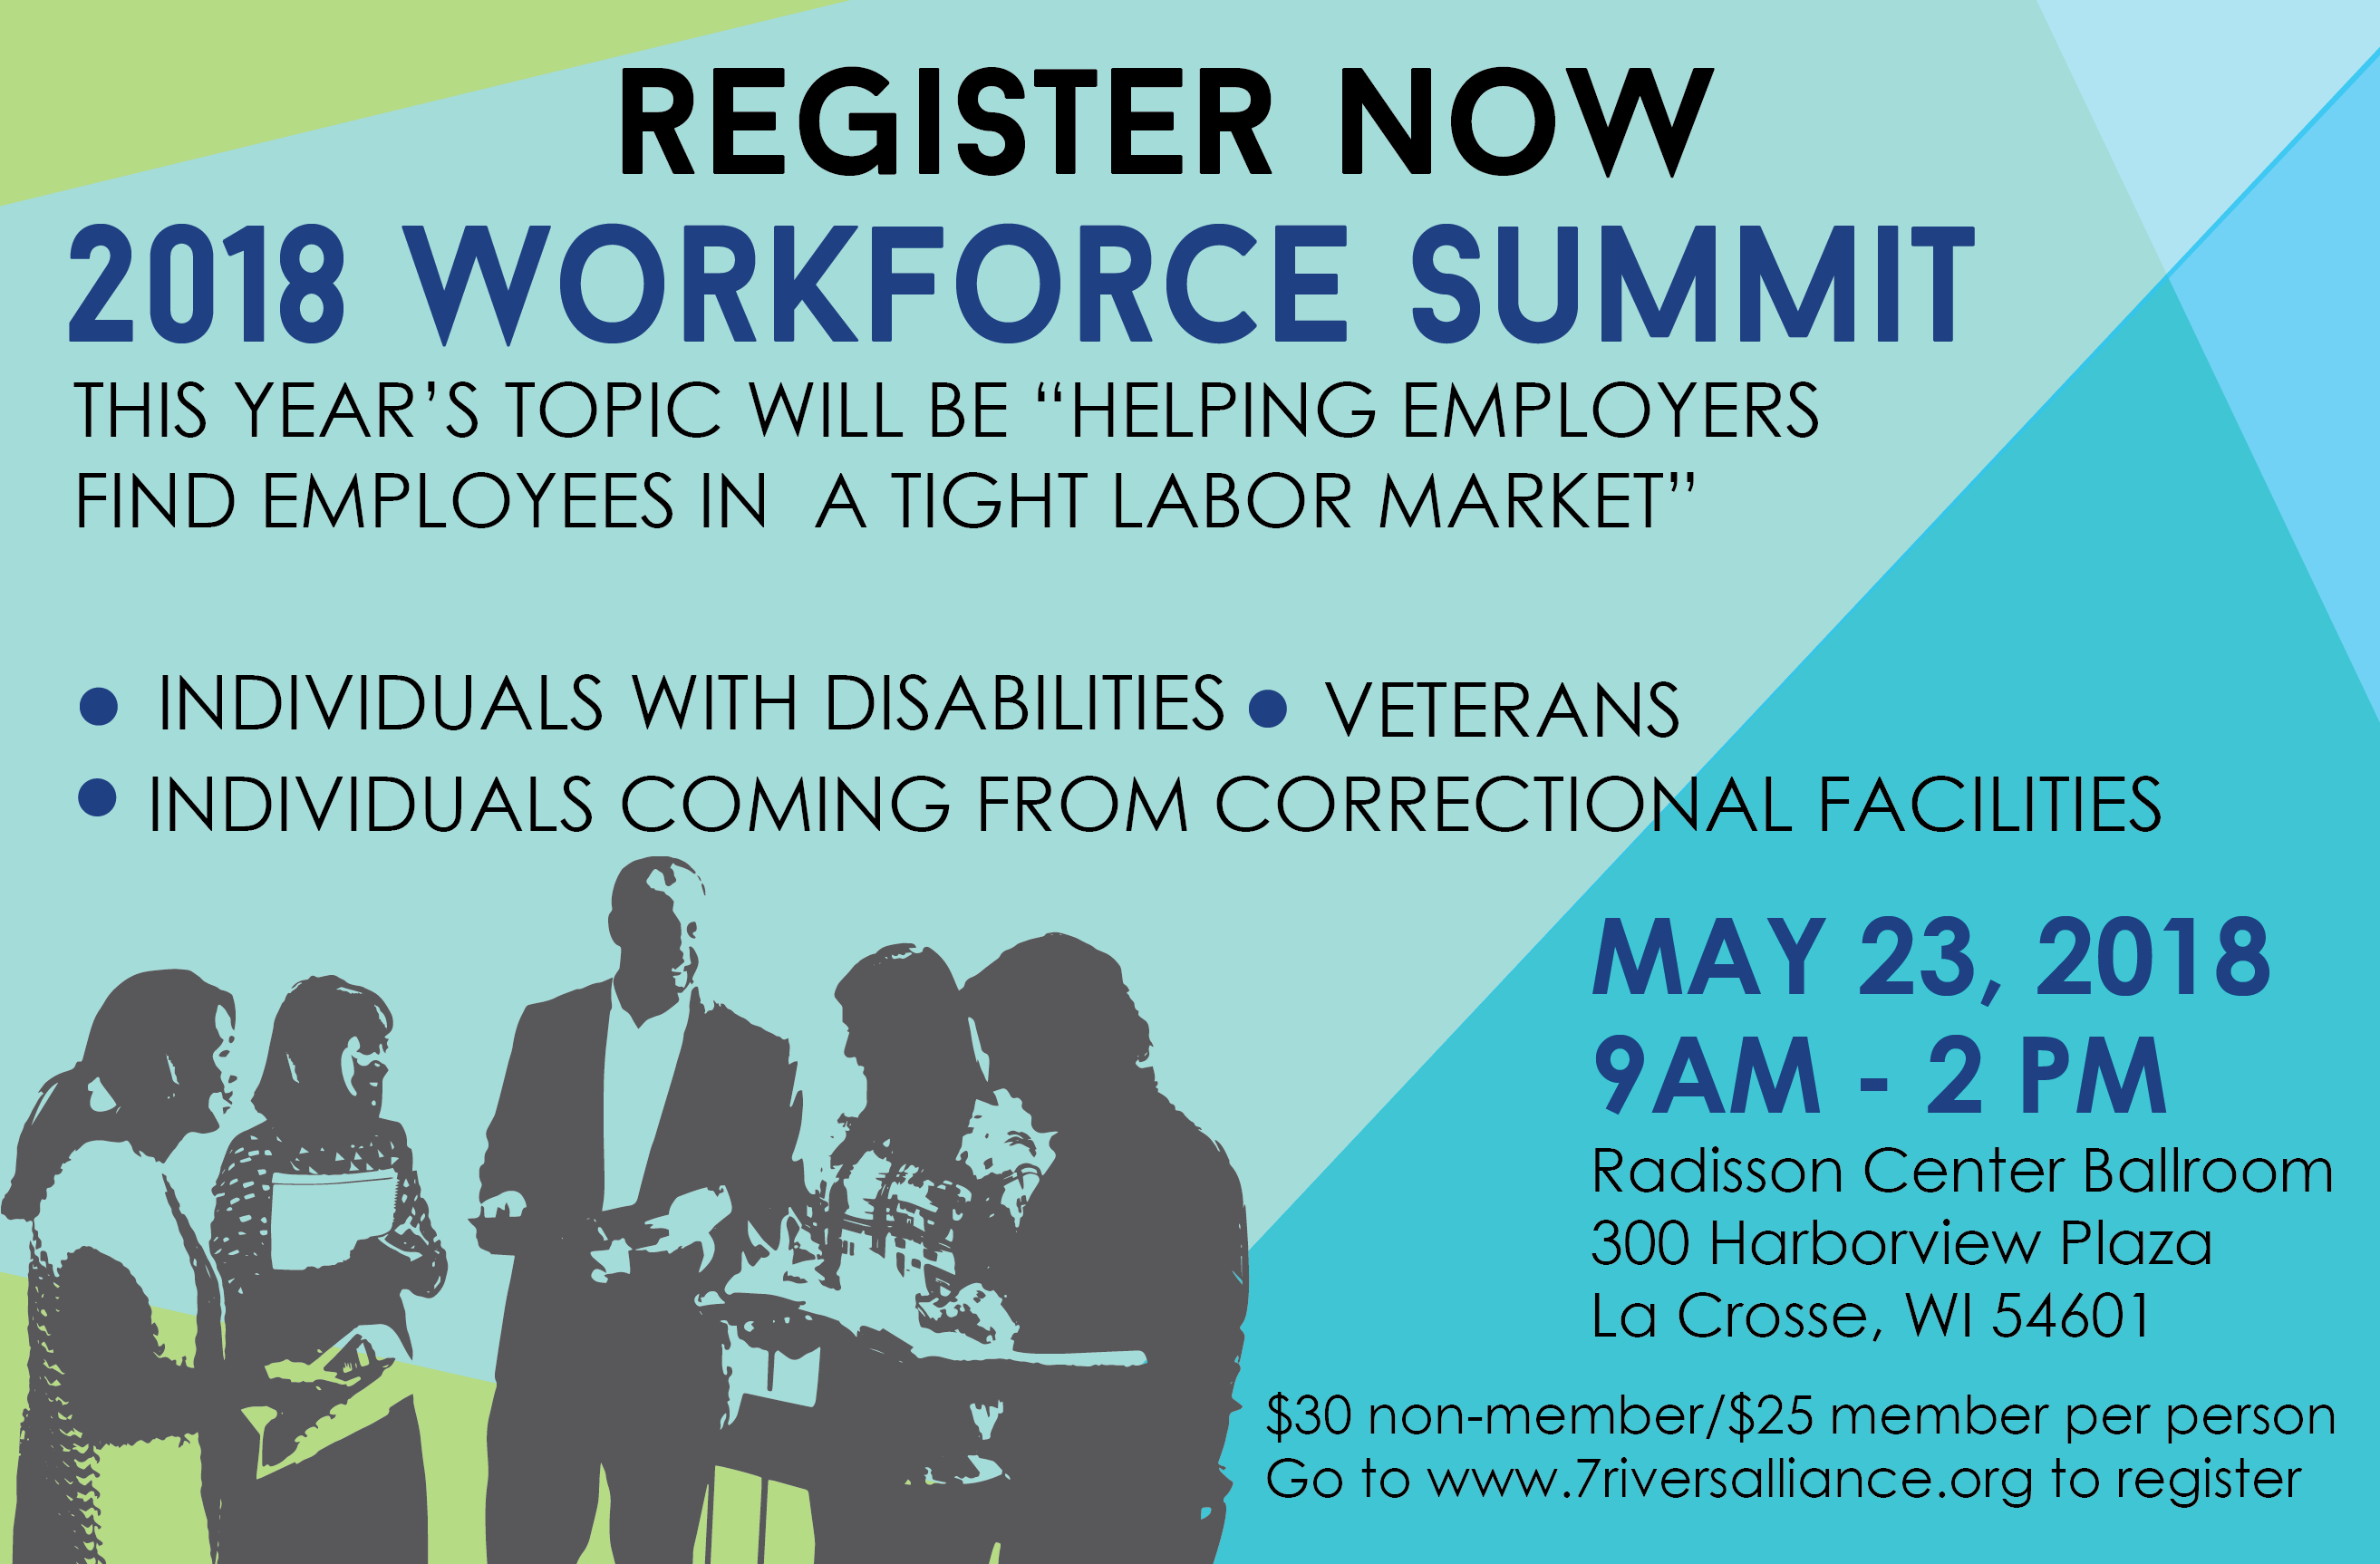 2018 Workforce Summit Register Now-01